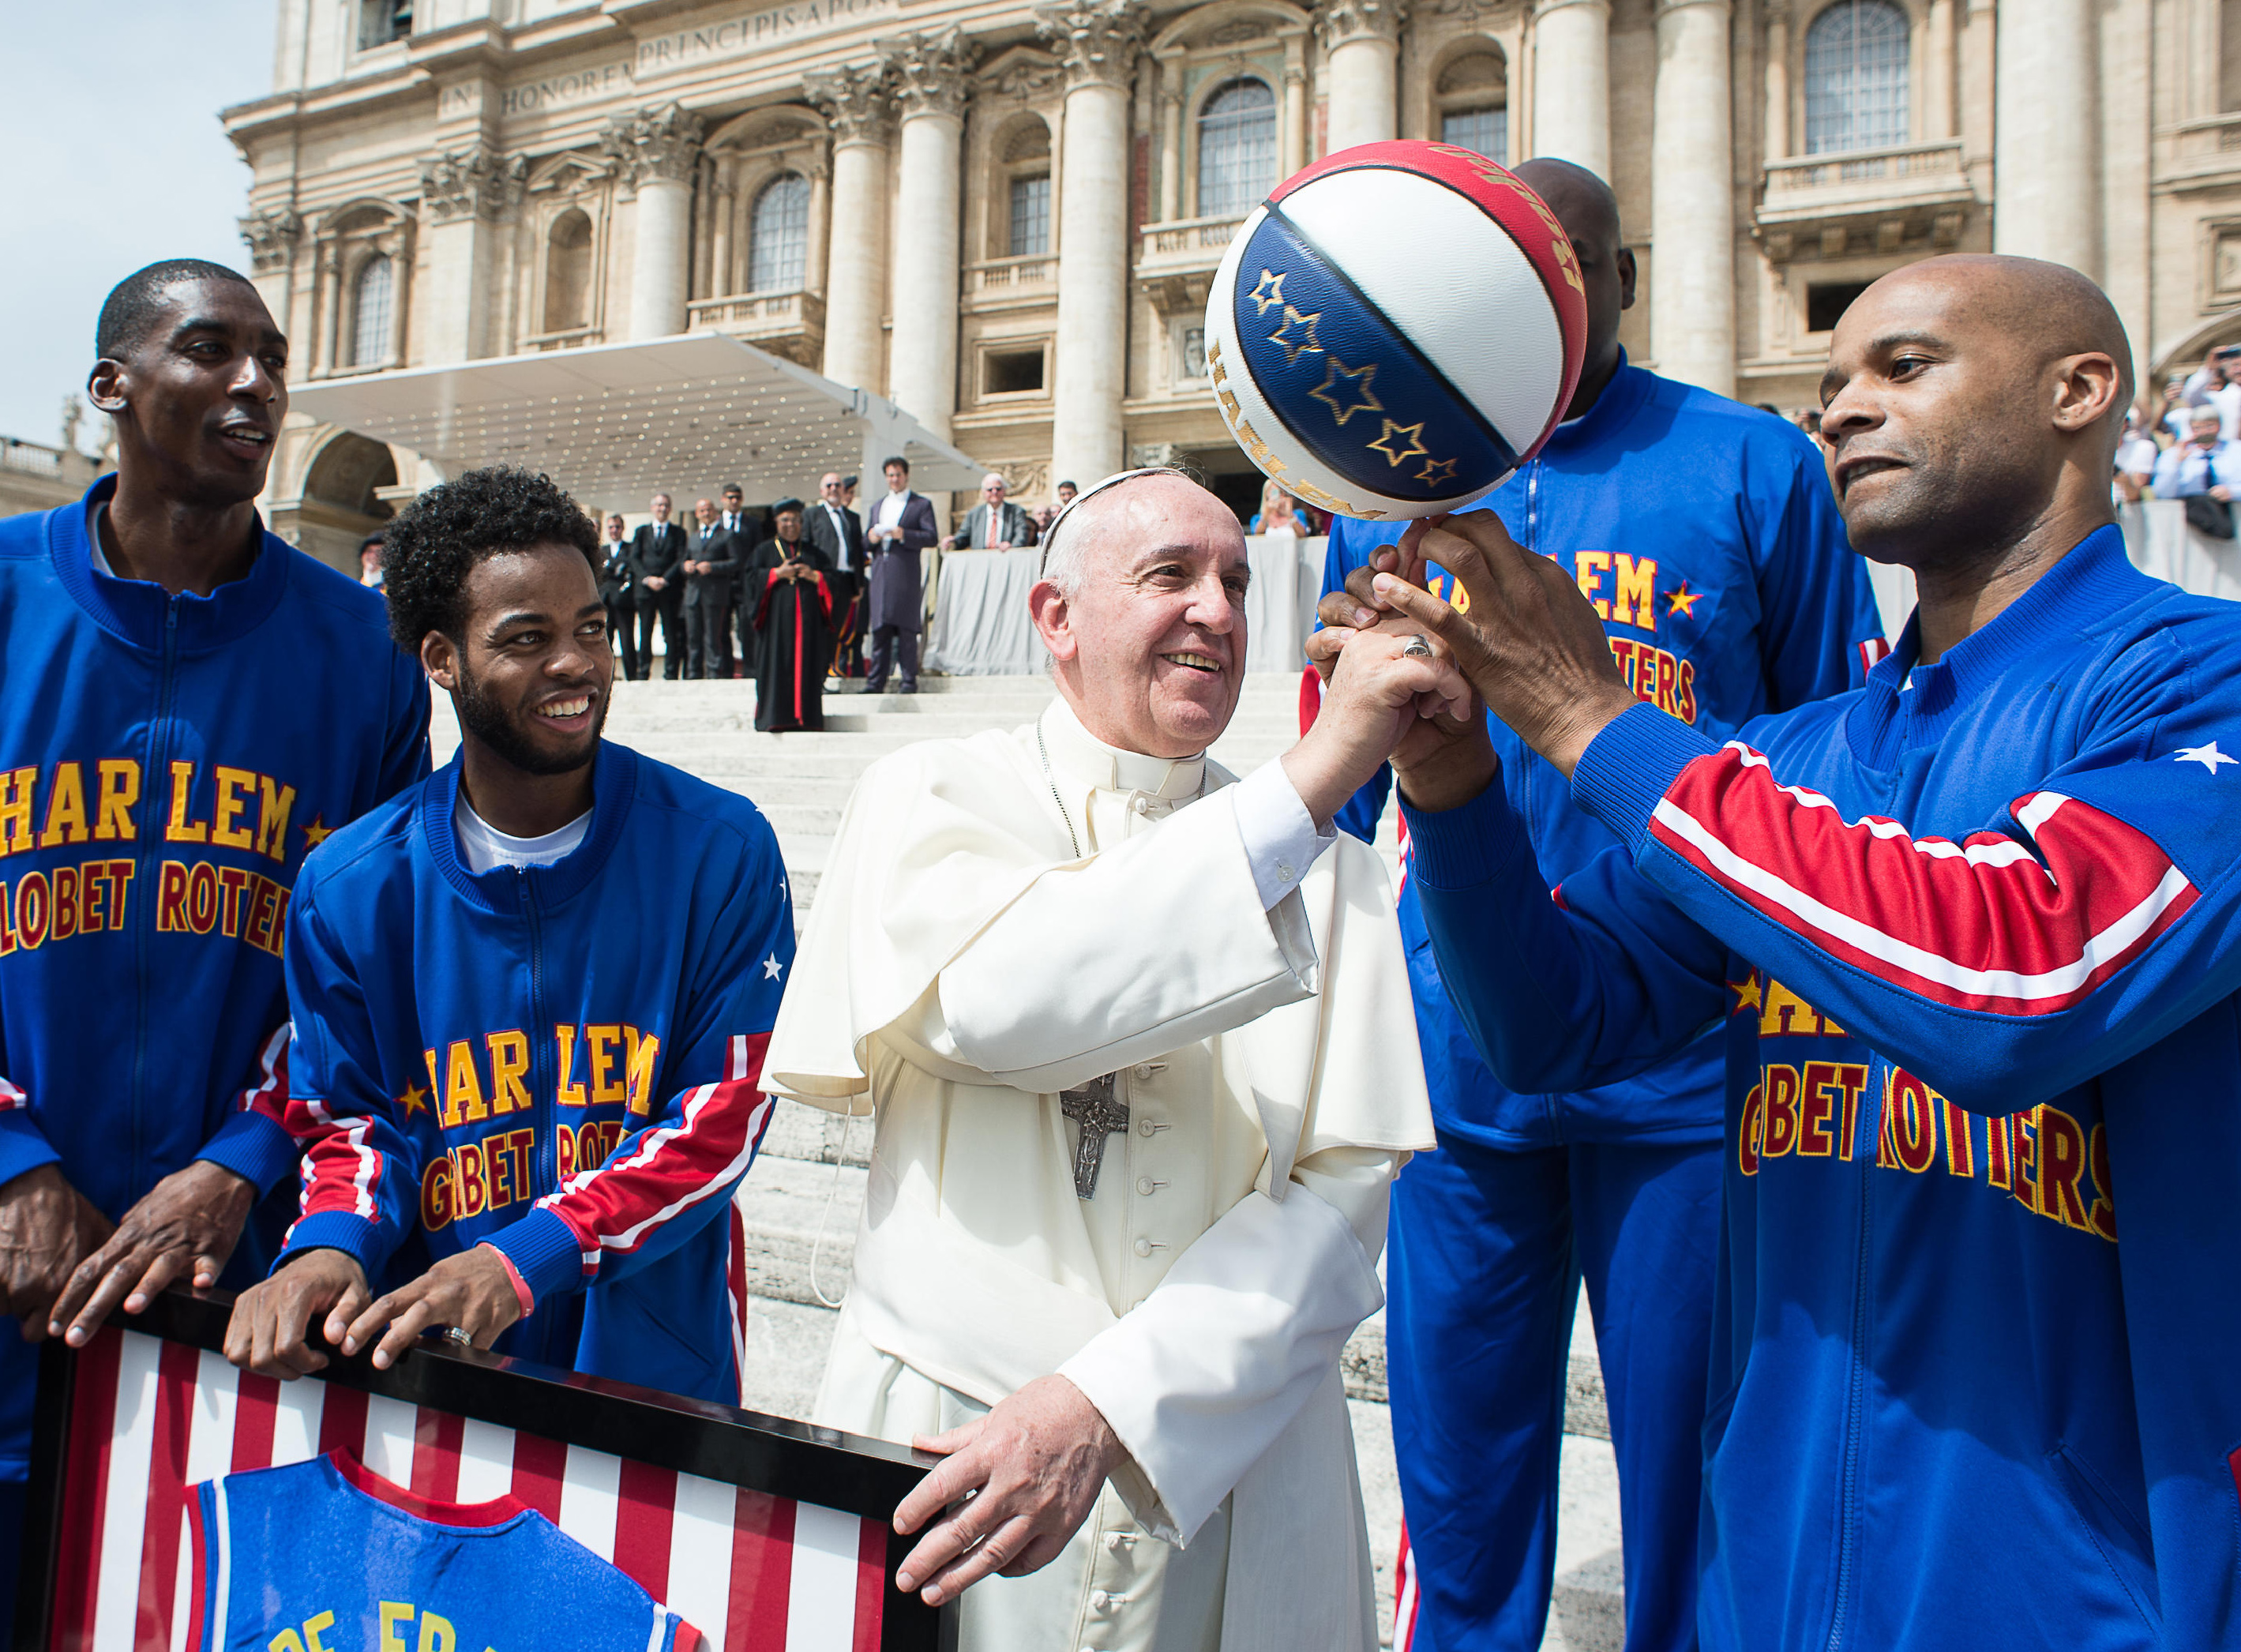 POPE BASKET PLAYERS